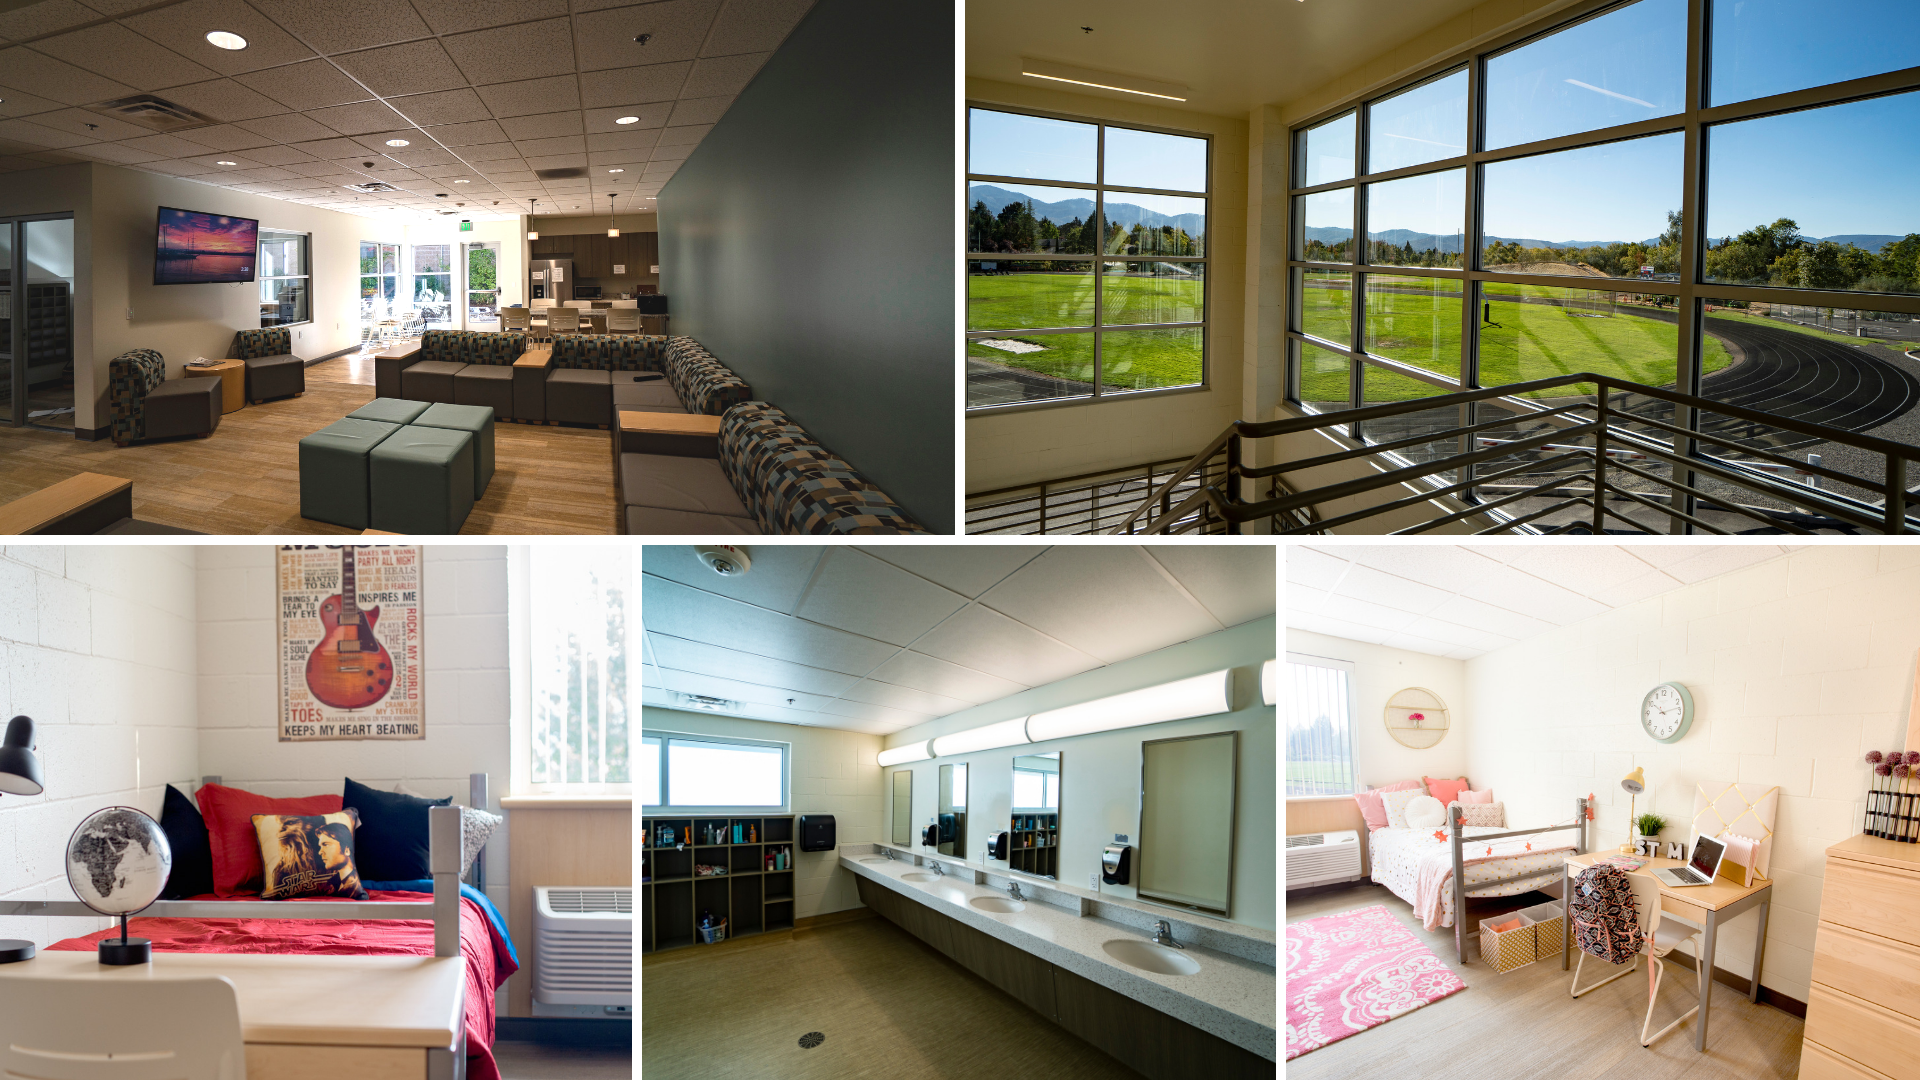 Collage of interior shots of the dormitory